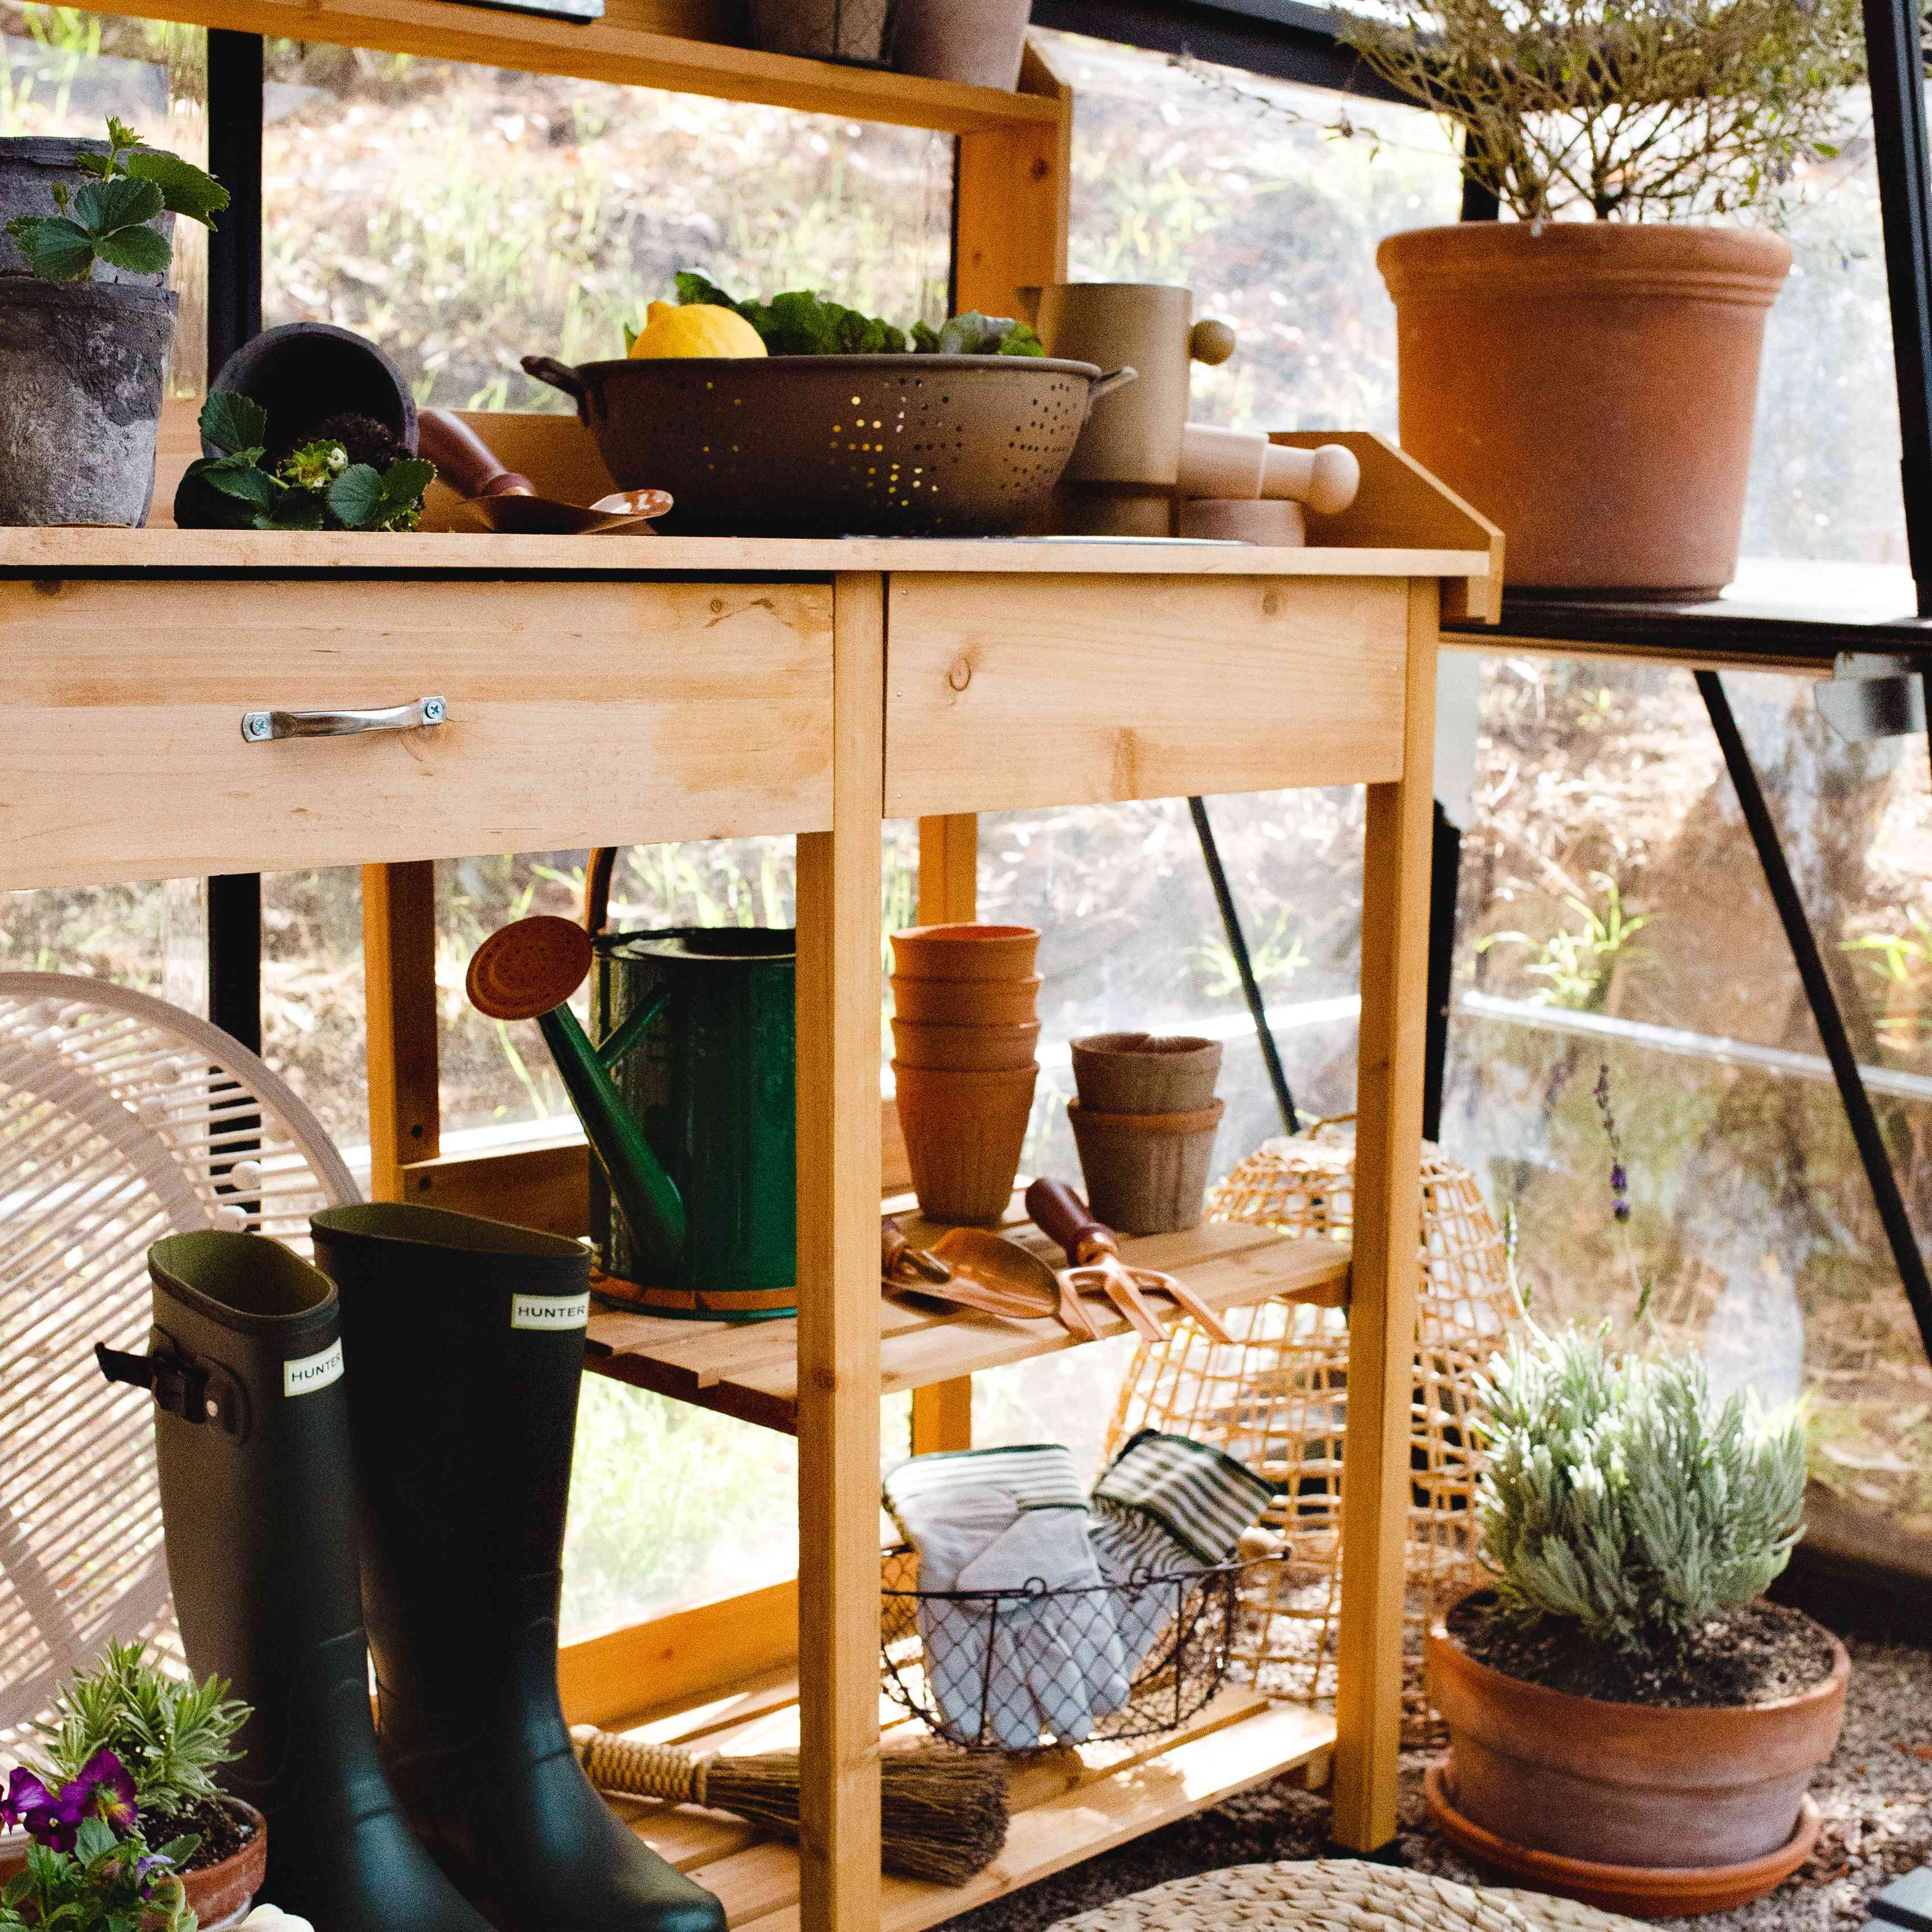 outdoor shelving features plants and supplies